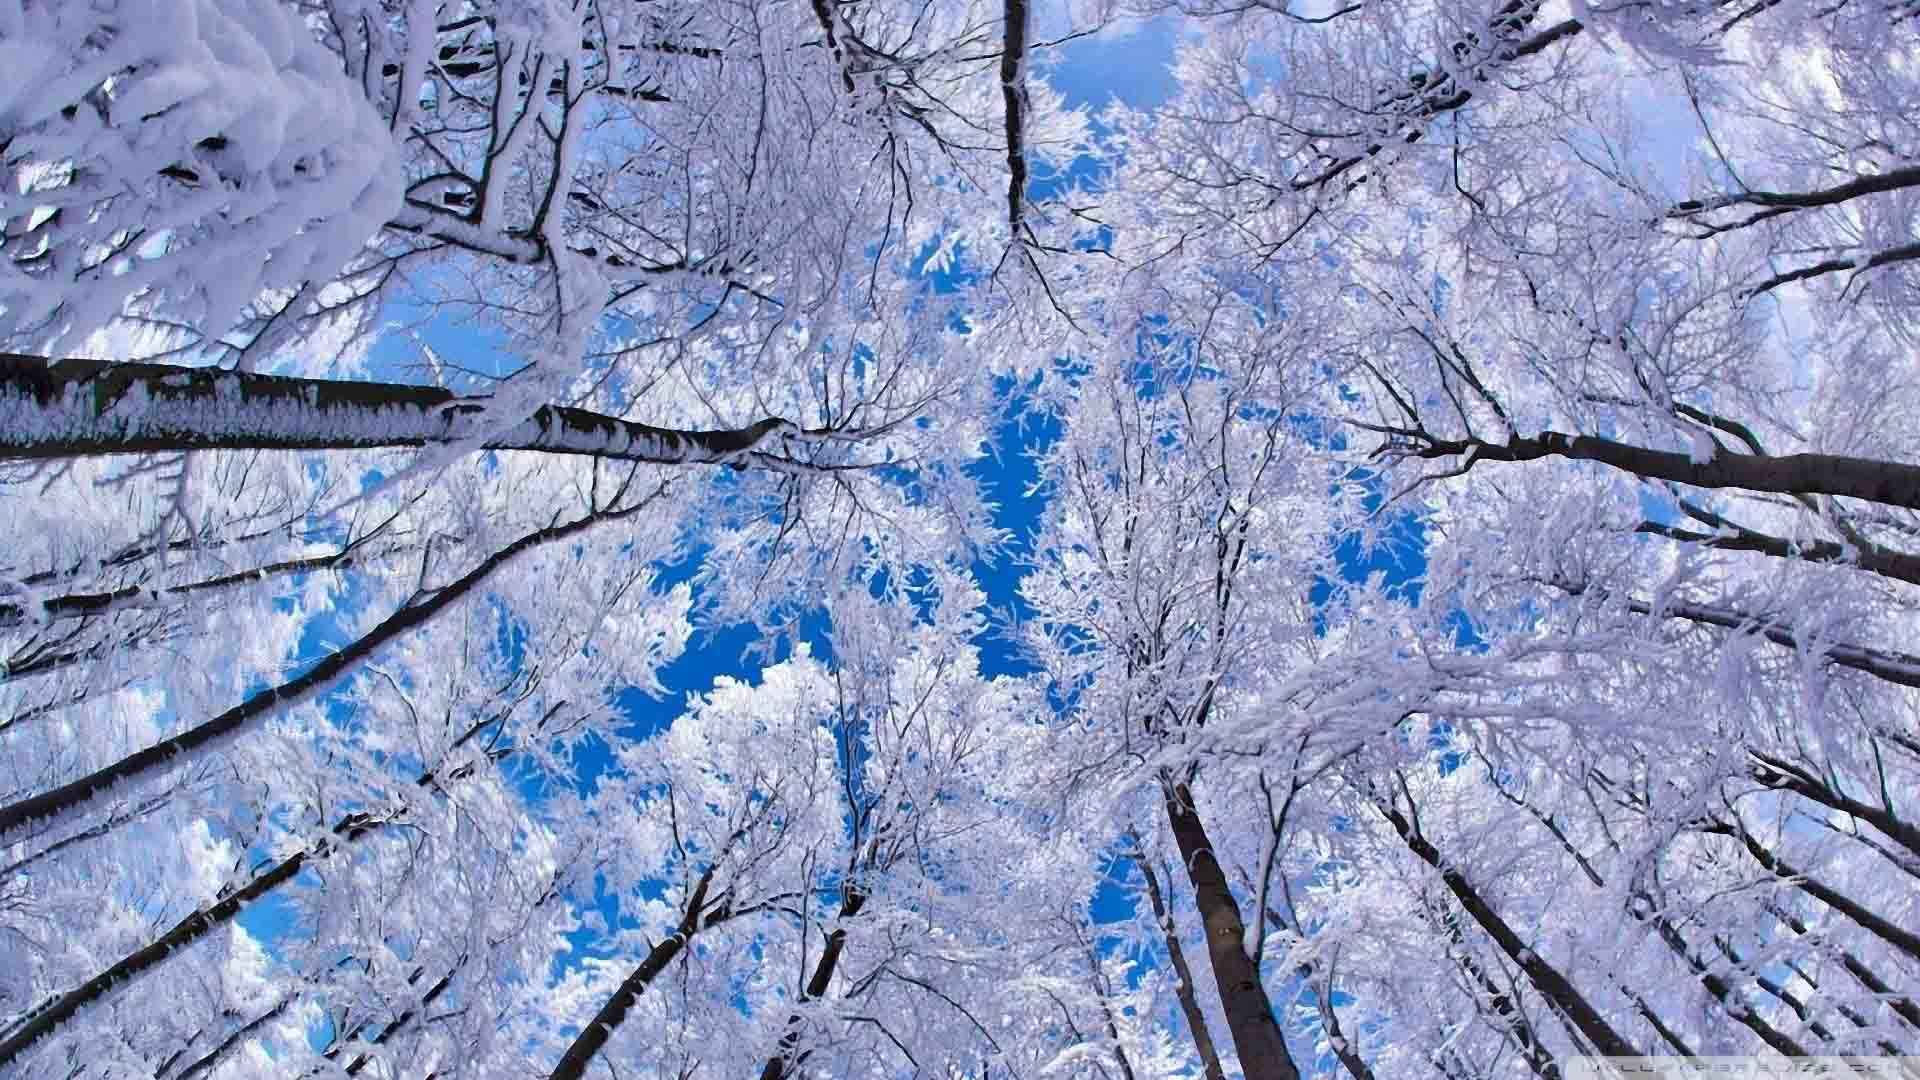 Wallpaper Scenes Gorgeous Desktop Wallpaper Winter Scenes ·①